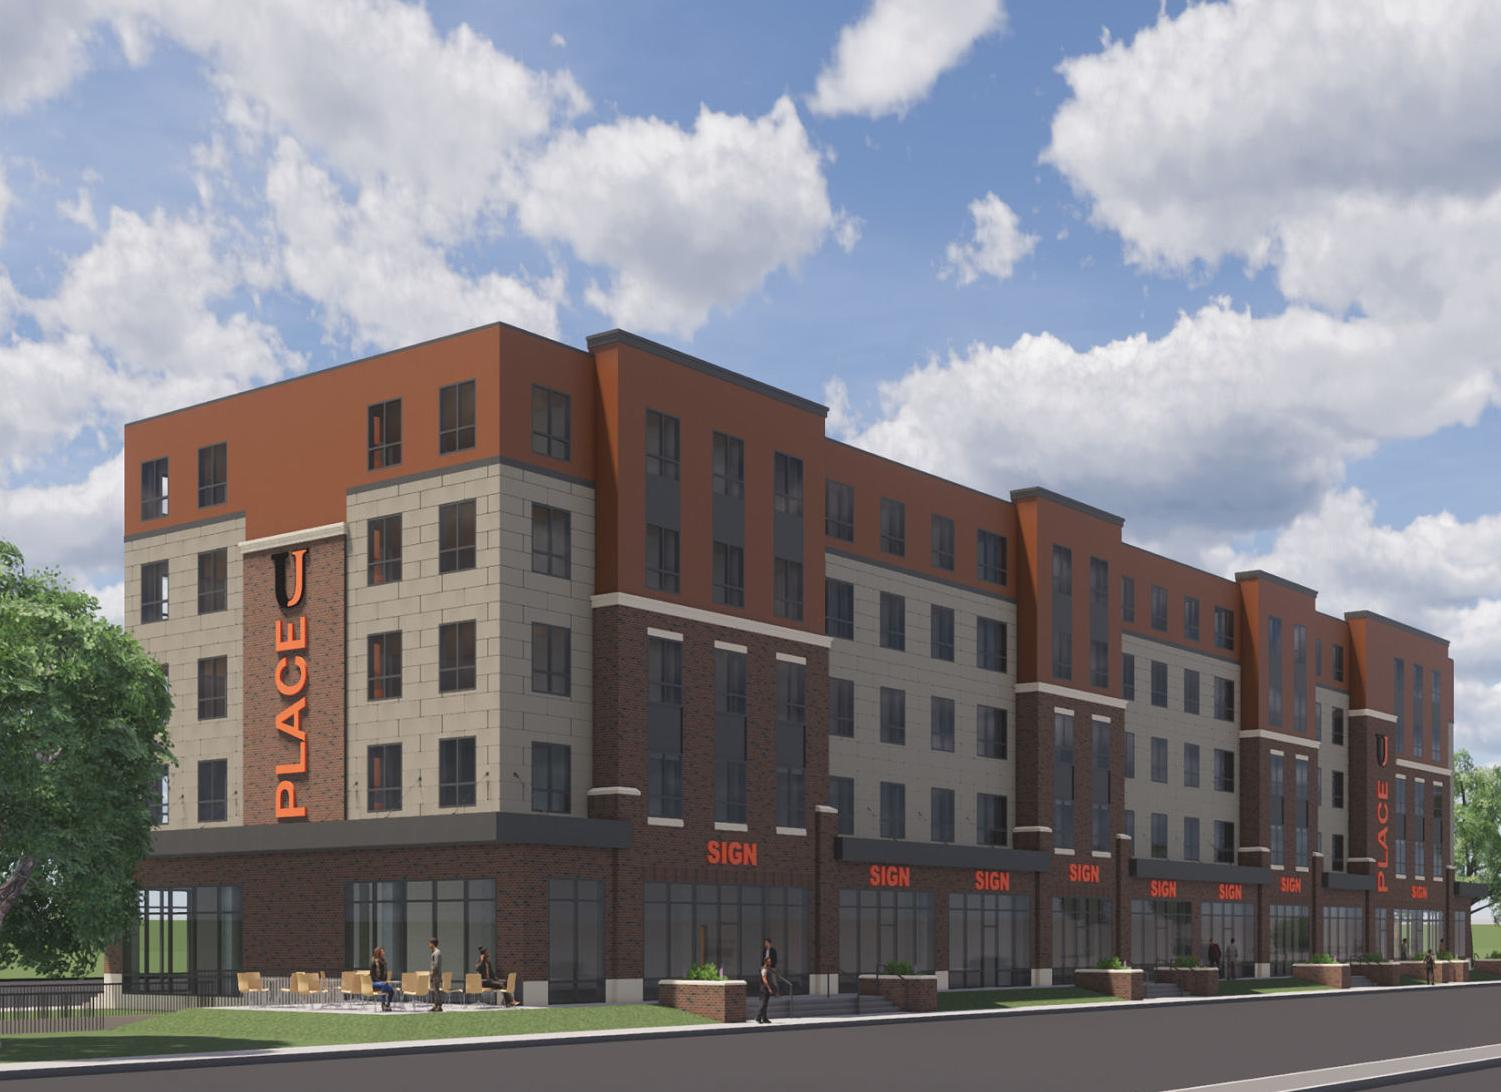 Housing and commercial center planned for Jamestown campus